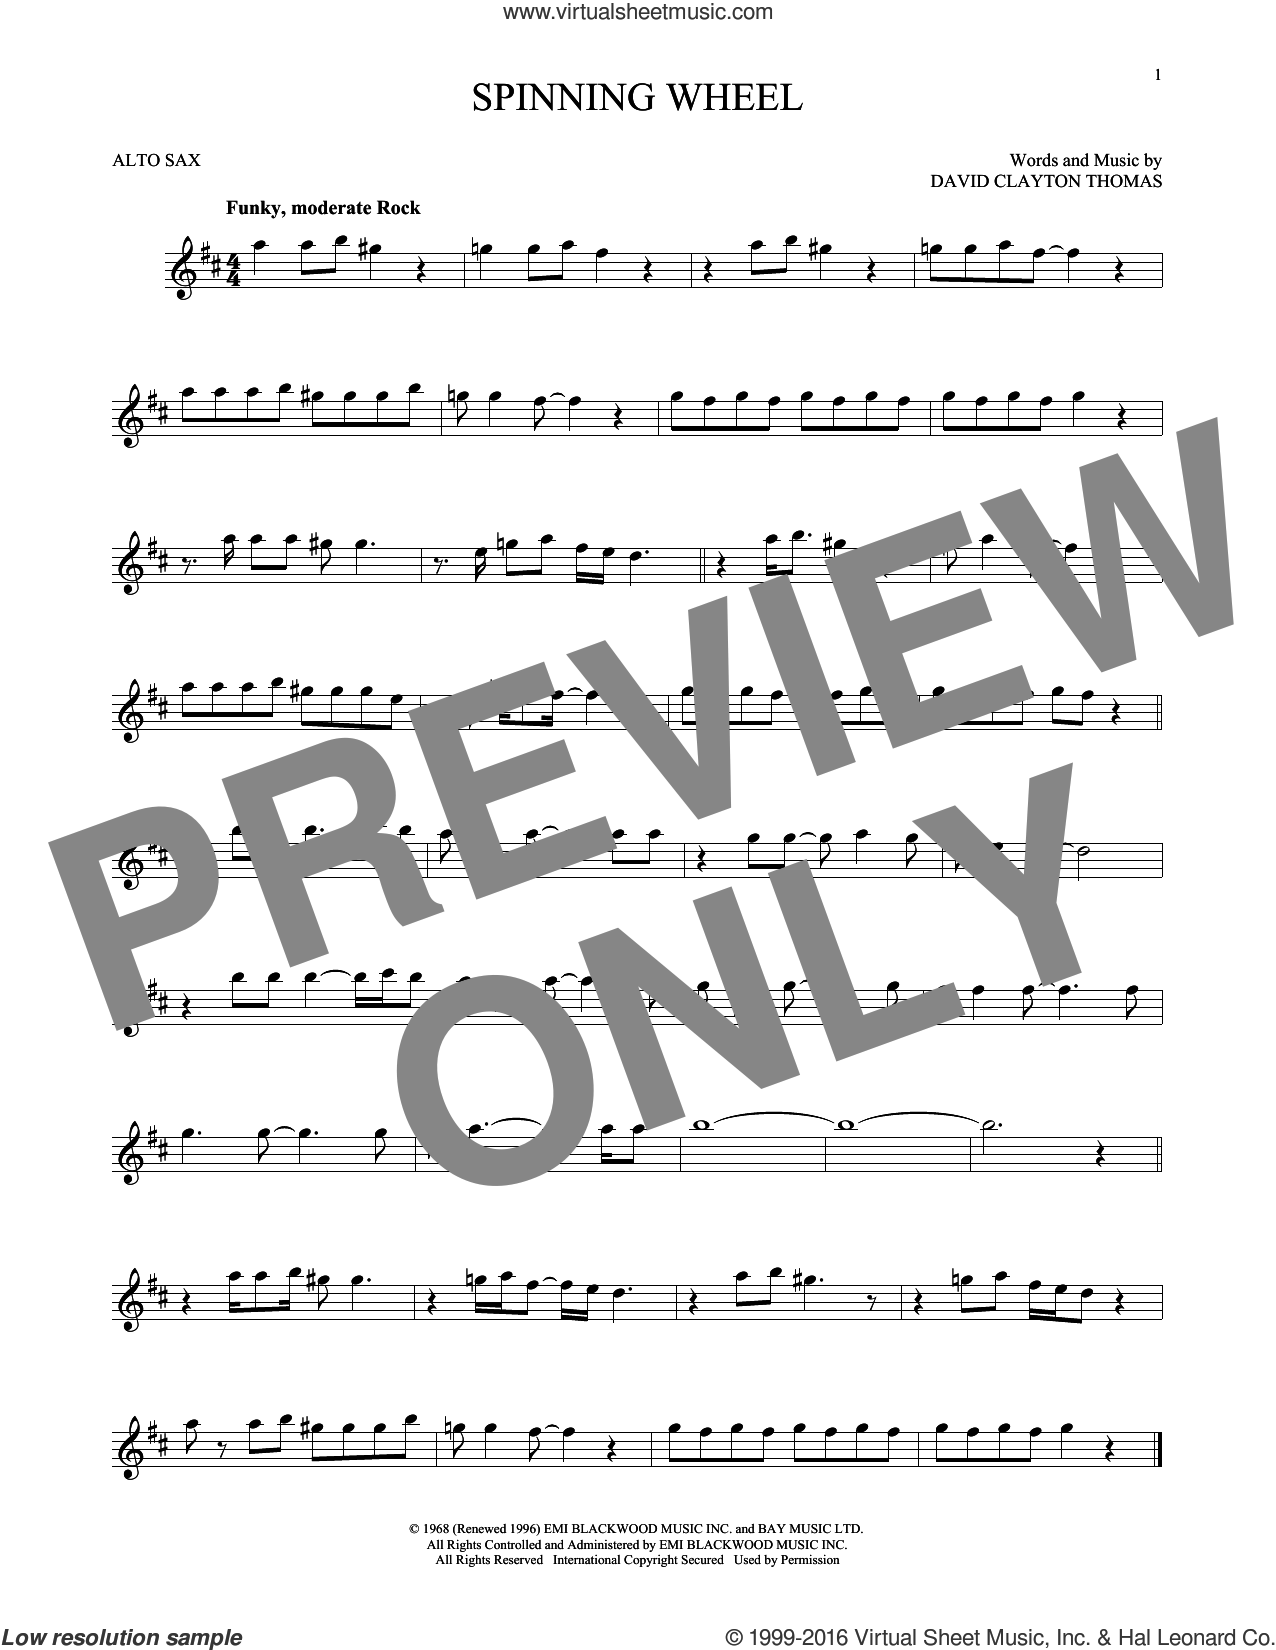 Spinning Wheel sheet music for alto saxophone solo by Blood, Sweat & Tears and David Clayton Thomas, intermediate skill level